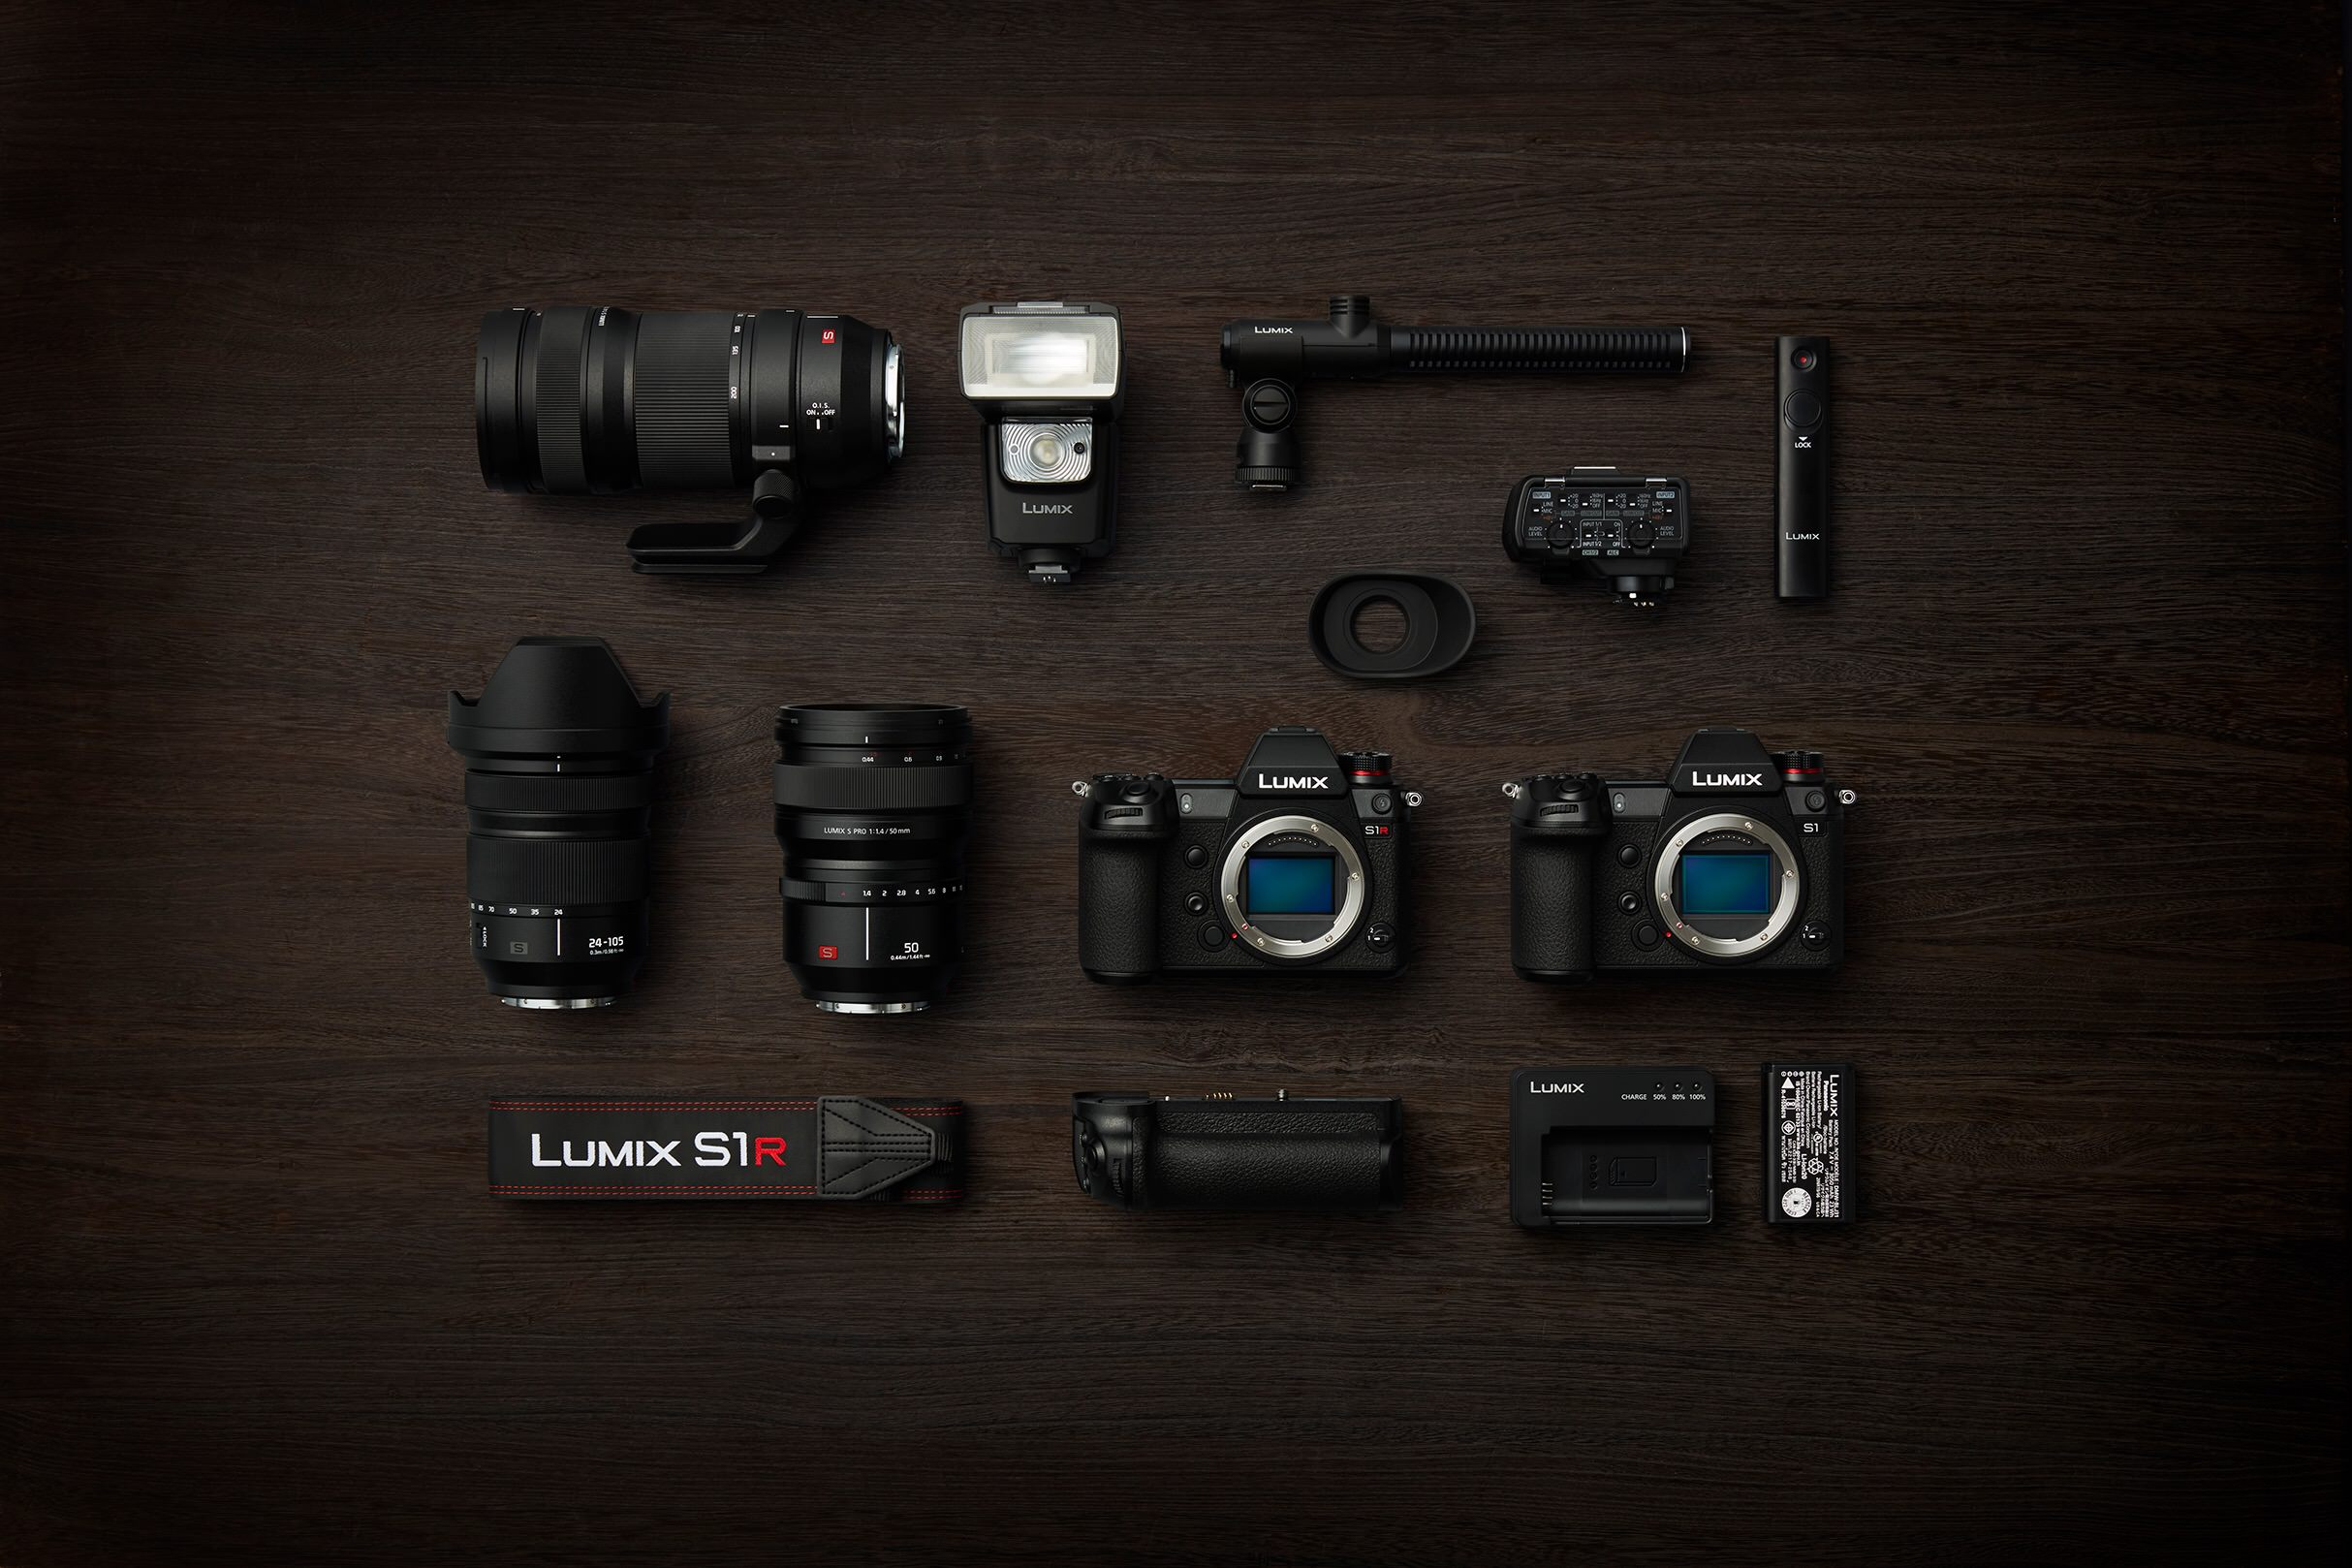 Panasonic LUMIX S1 and LUMIX S1R Full Frame Mirrorless Cameras